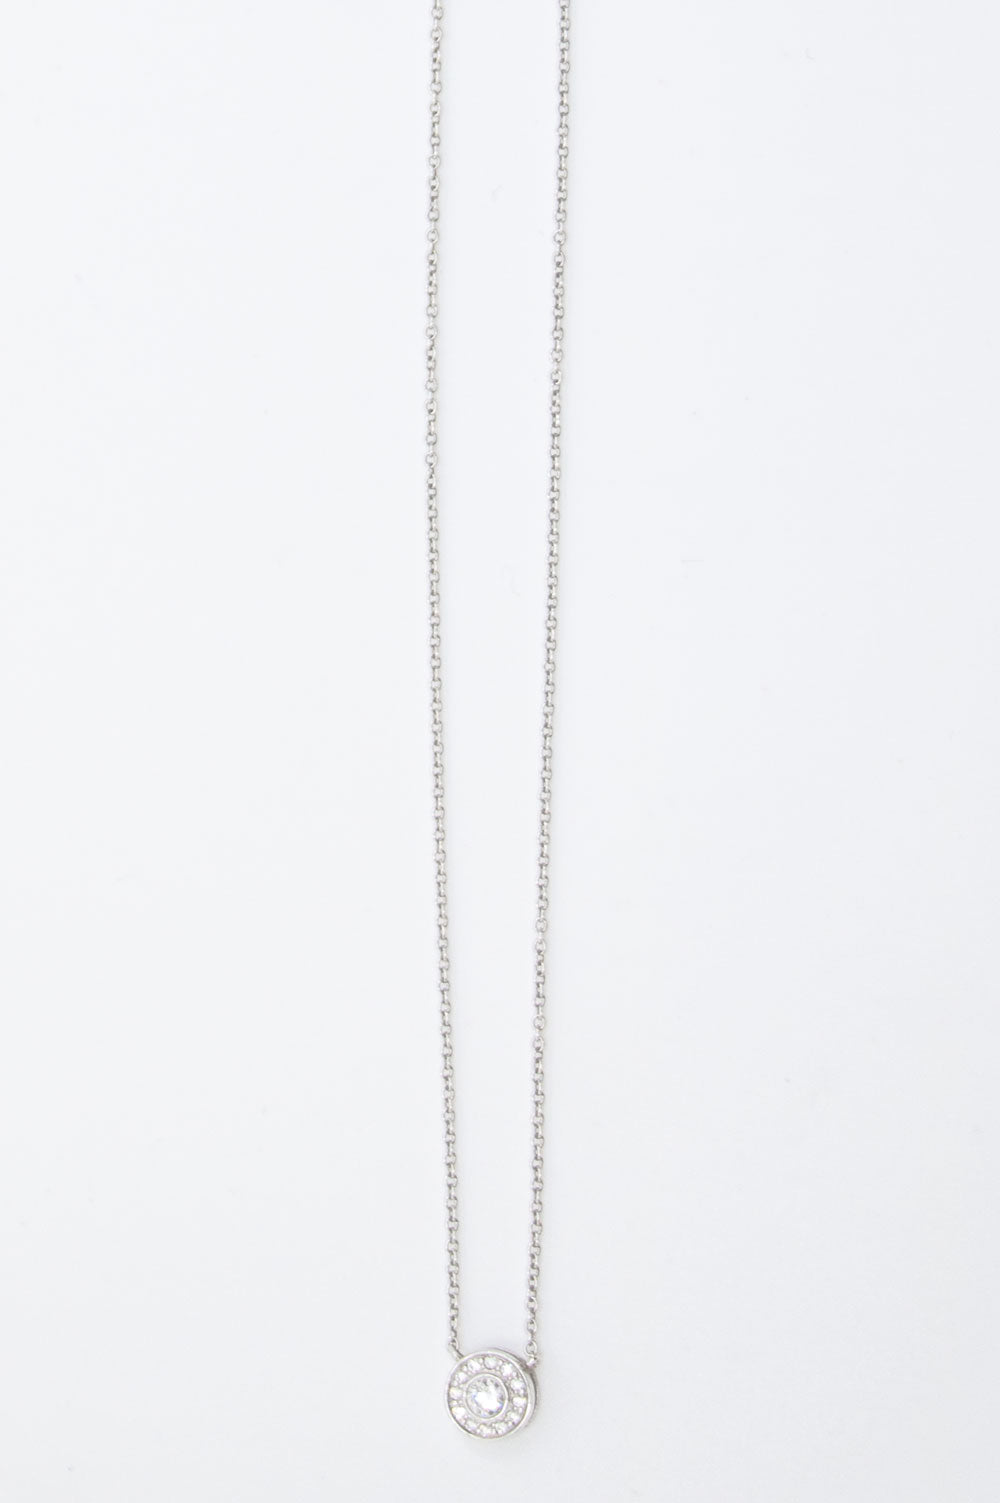 TIFANNY & CO Soleste Necklace